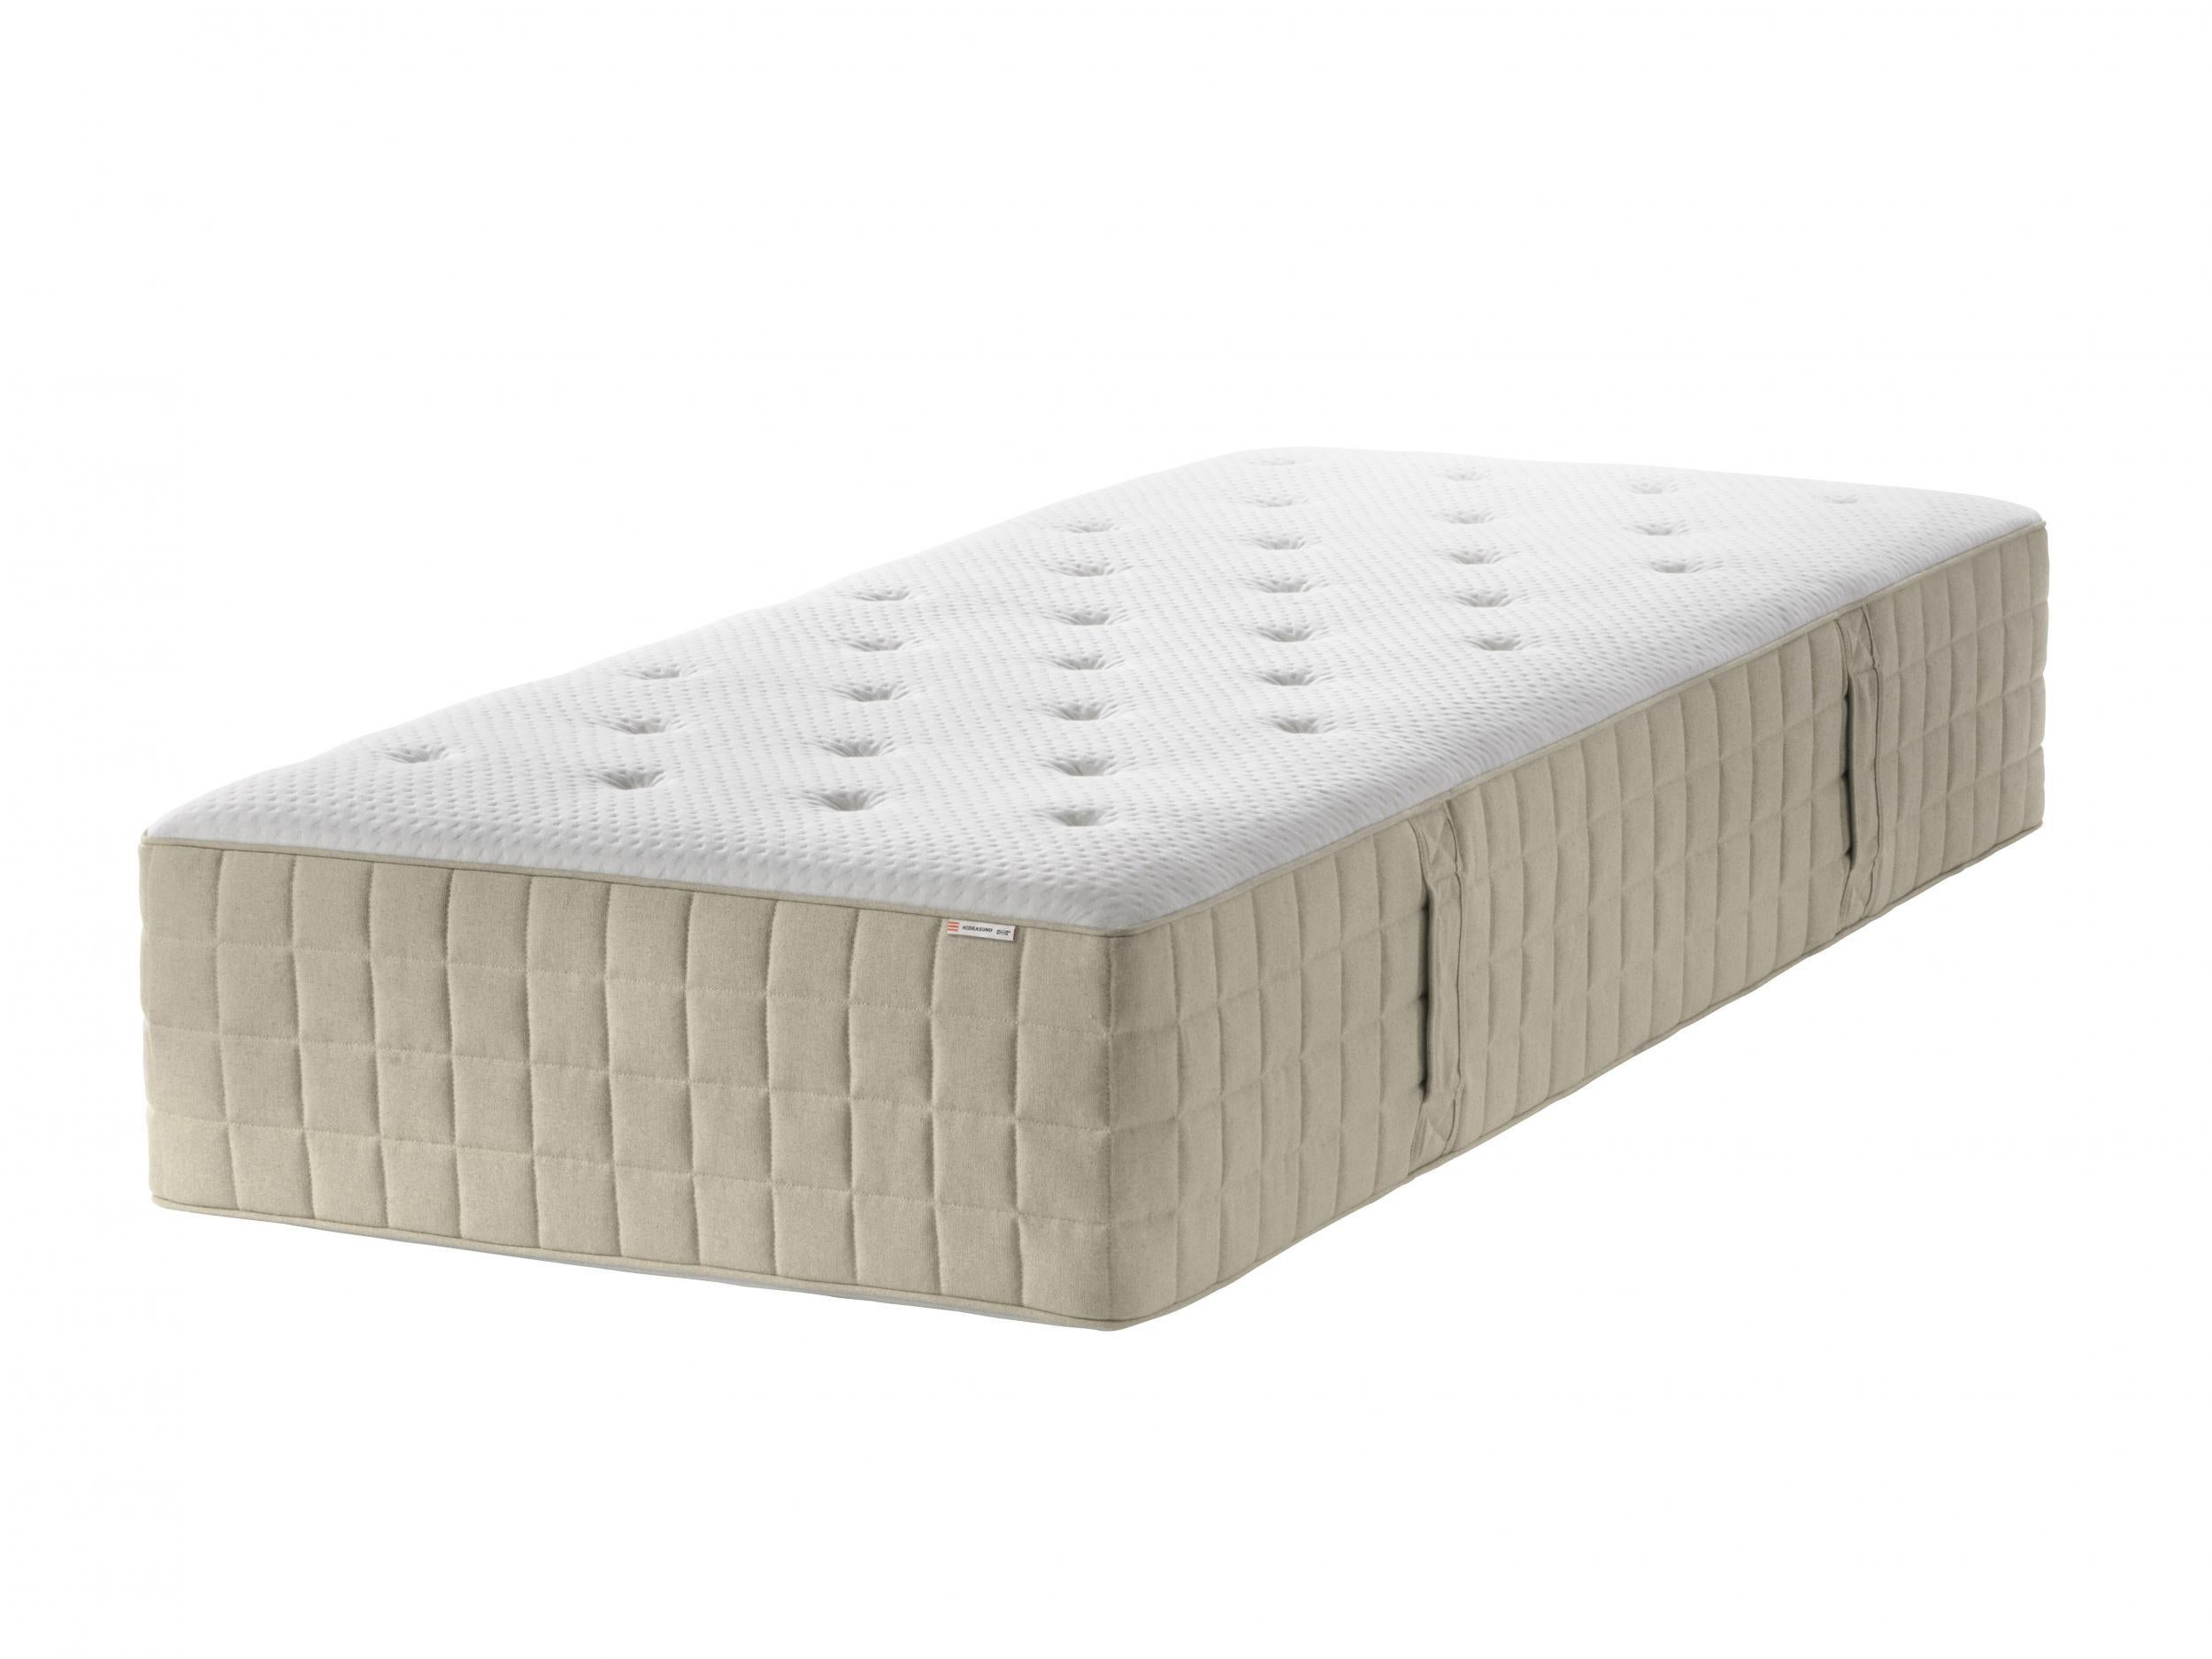 finest selection 83a75 bd2d8 Best mattress 2019: What to consider when buying memory foam ...